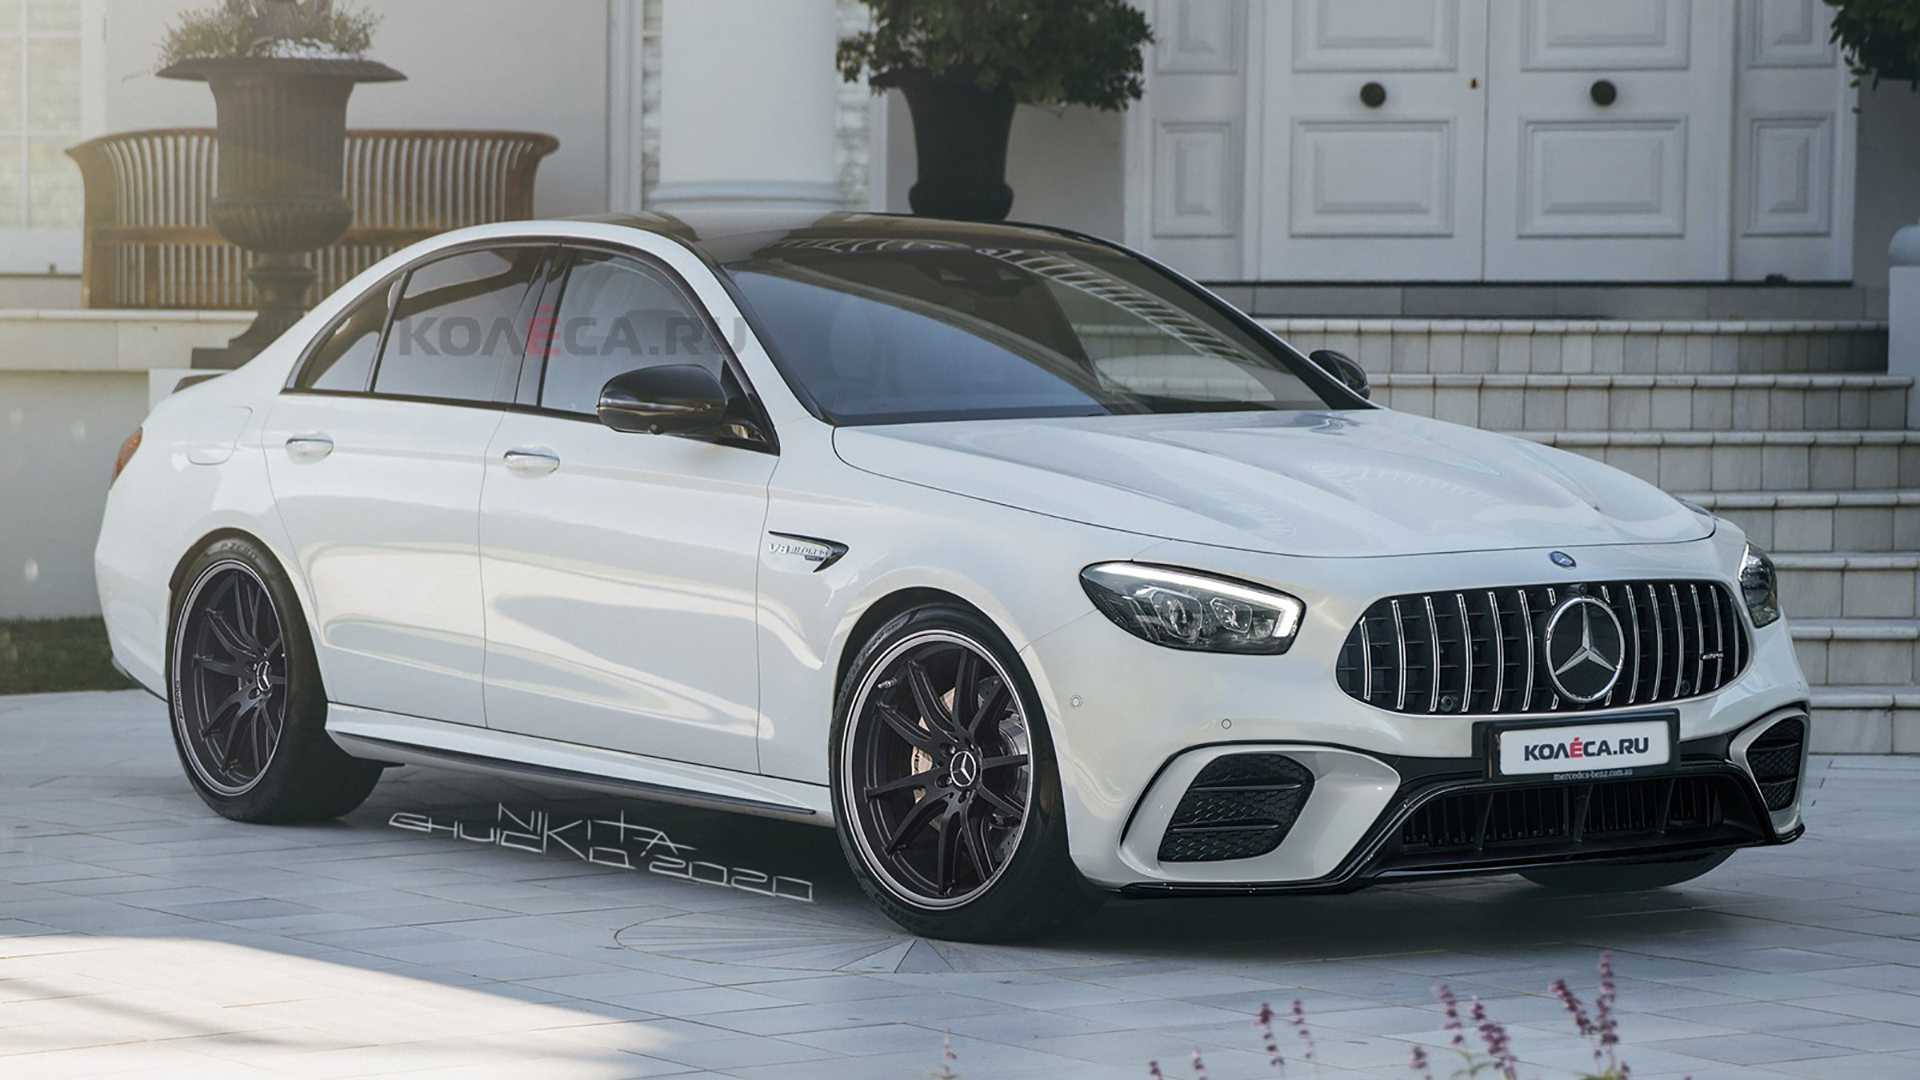 2021 Mercedes-AMG E63 Leaked Images Lead To Realistic ...